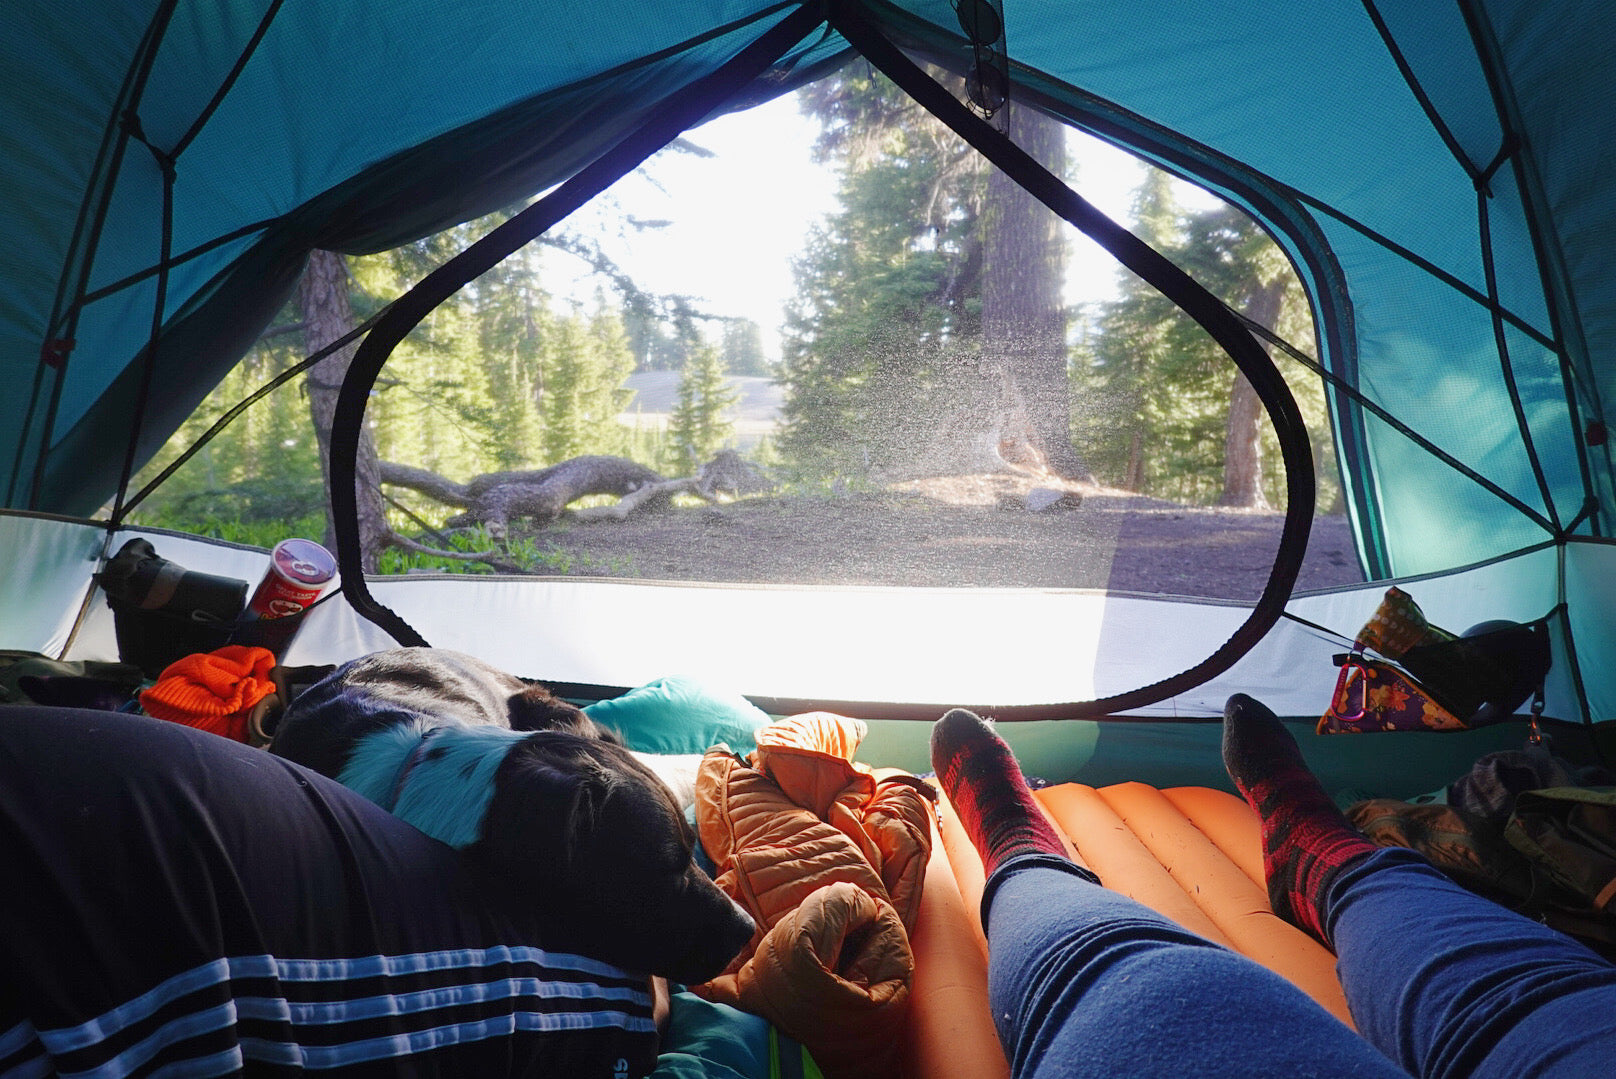 Two humans snuggled up with dog inside tent while camping.